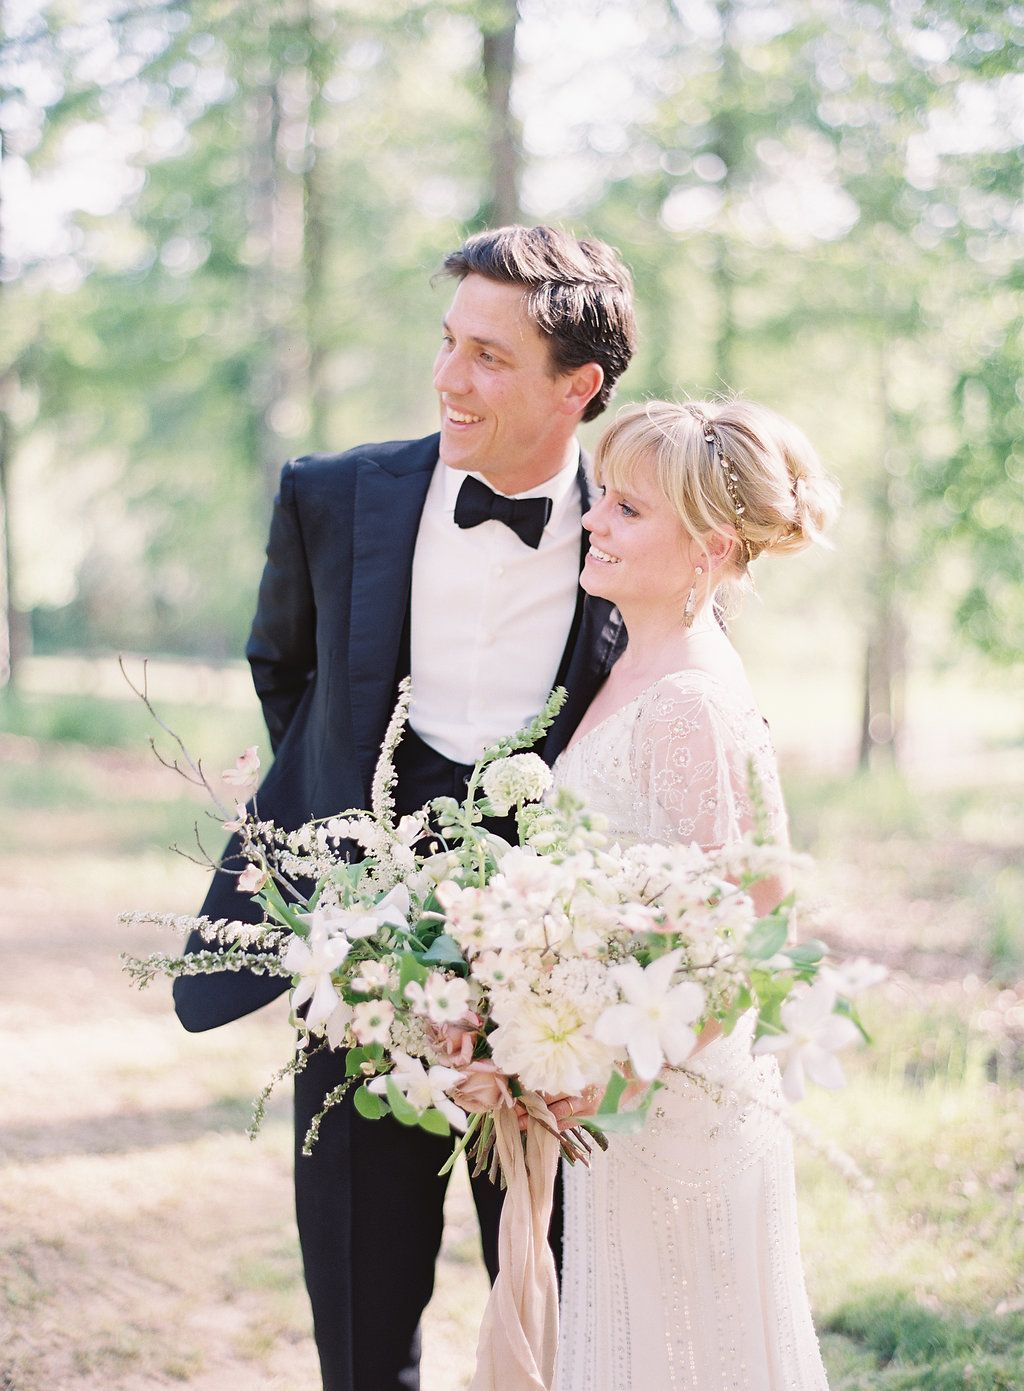 A Perfect Outdoor Wedding At The Family Farm